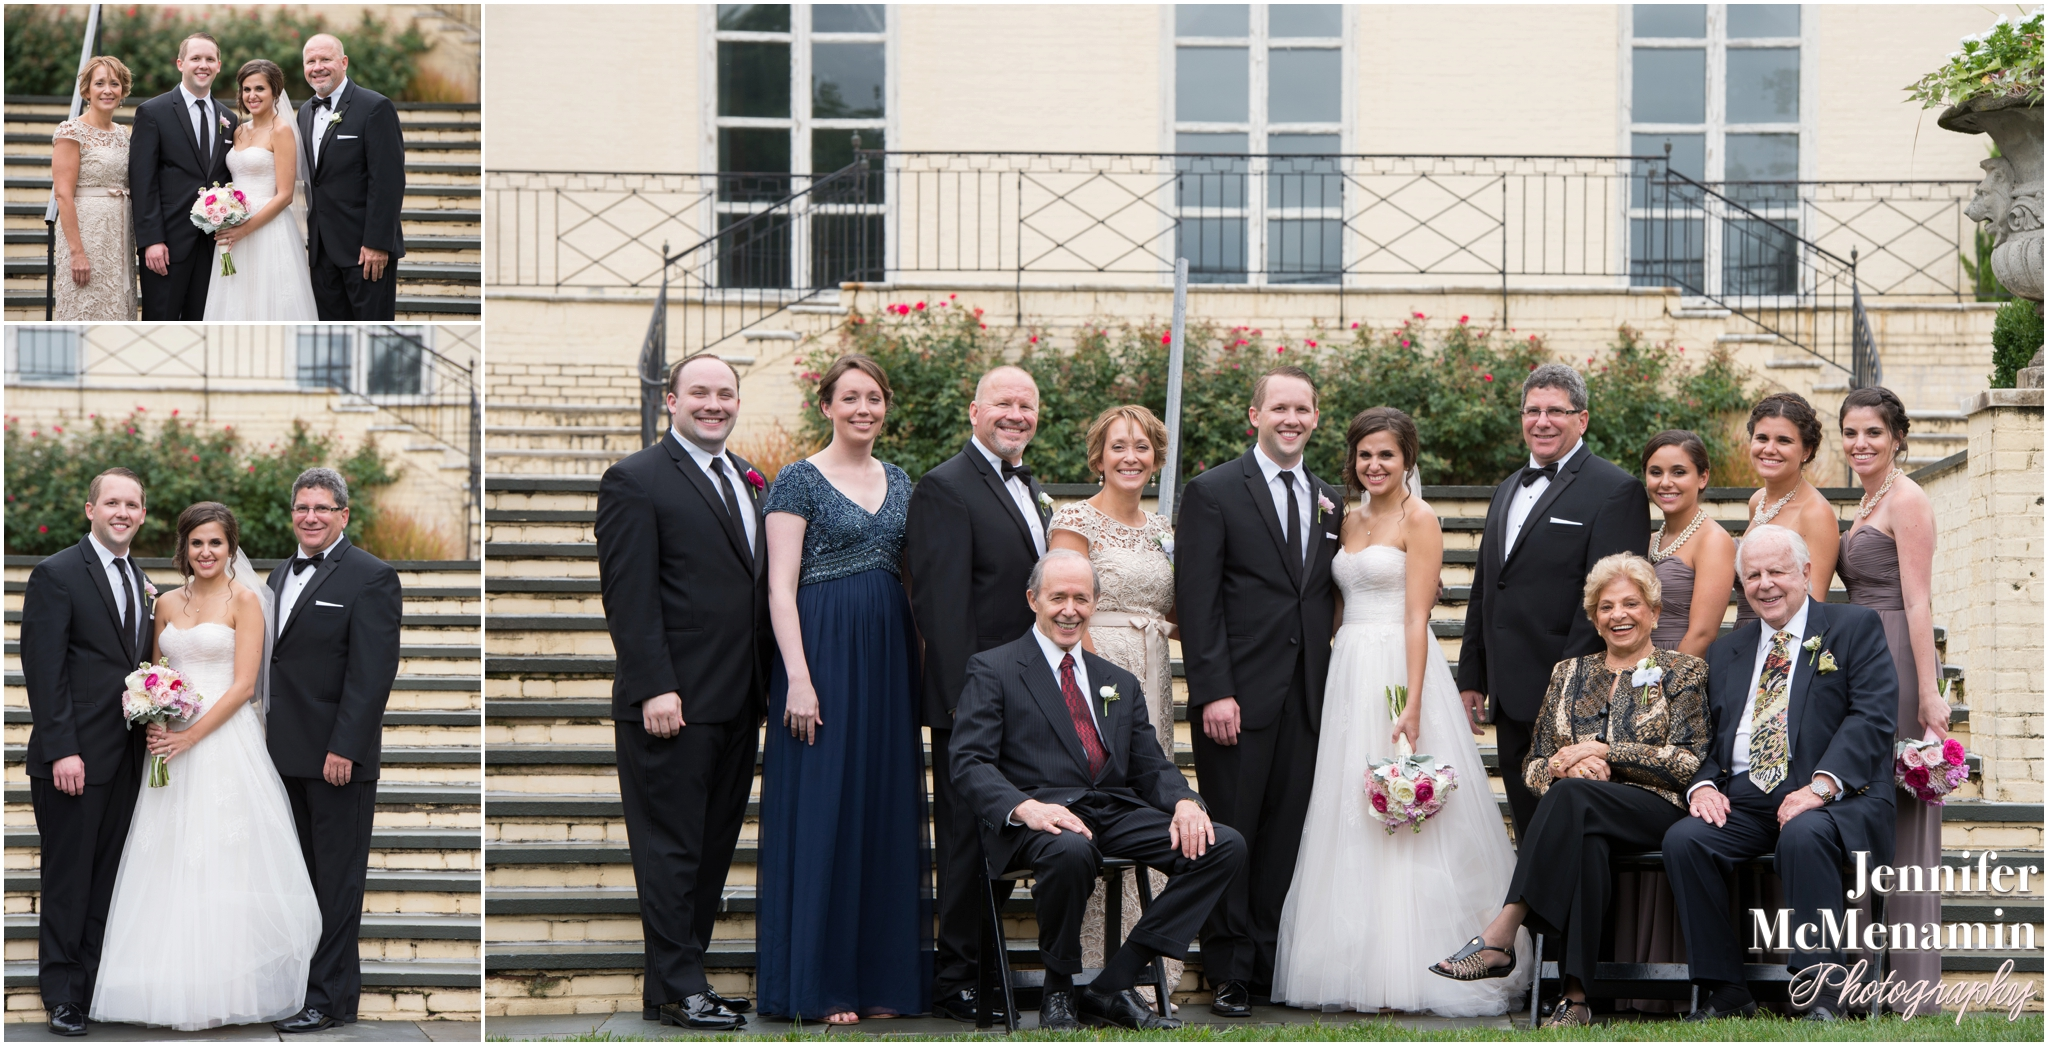 0059-BlumWilliams_02372-0432_JenniferMcMenaminPhotography_Evergreen-Museum-Carriage-House_Baltimore-wedding-photography_Baltimore-wedding-photographer